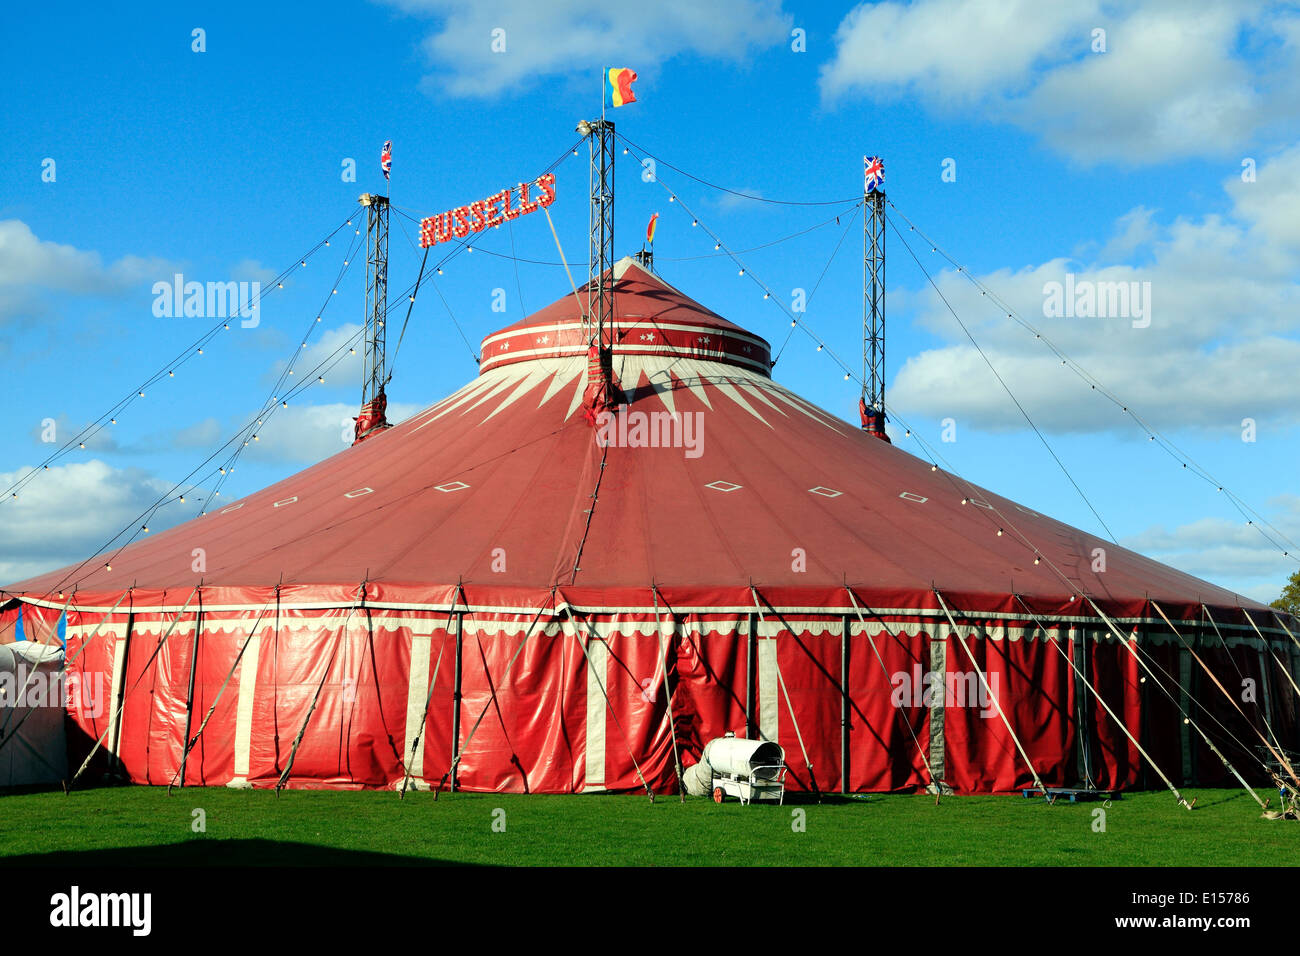 Russells International Circus, UK Wanderzirkus zeigt, Grand Chapiteau Zelt, Norfolk, England Stockbild